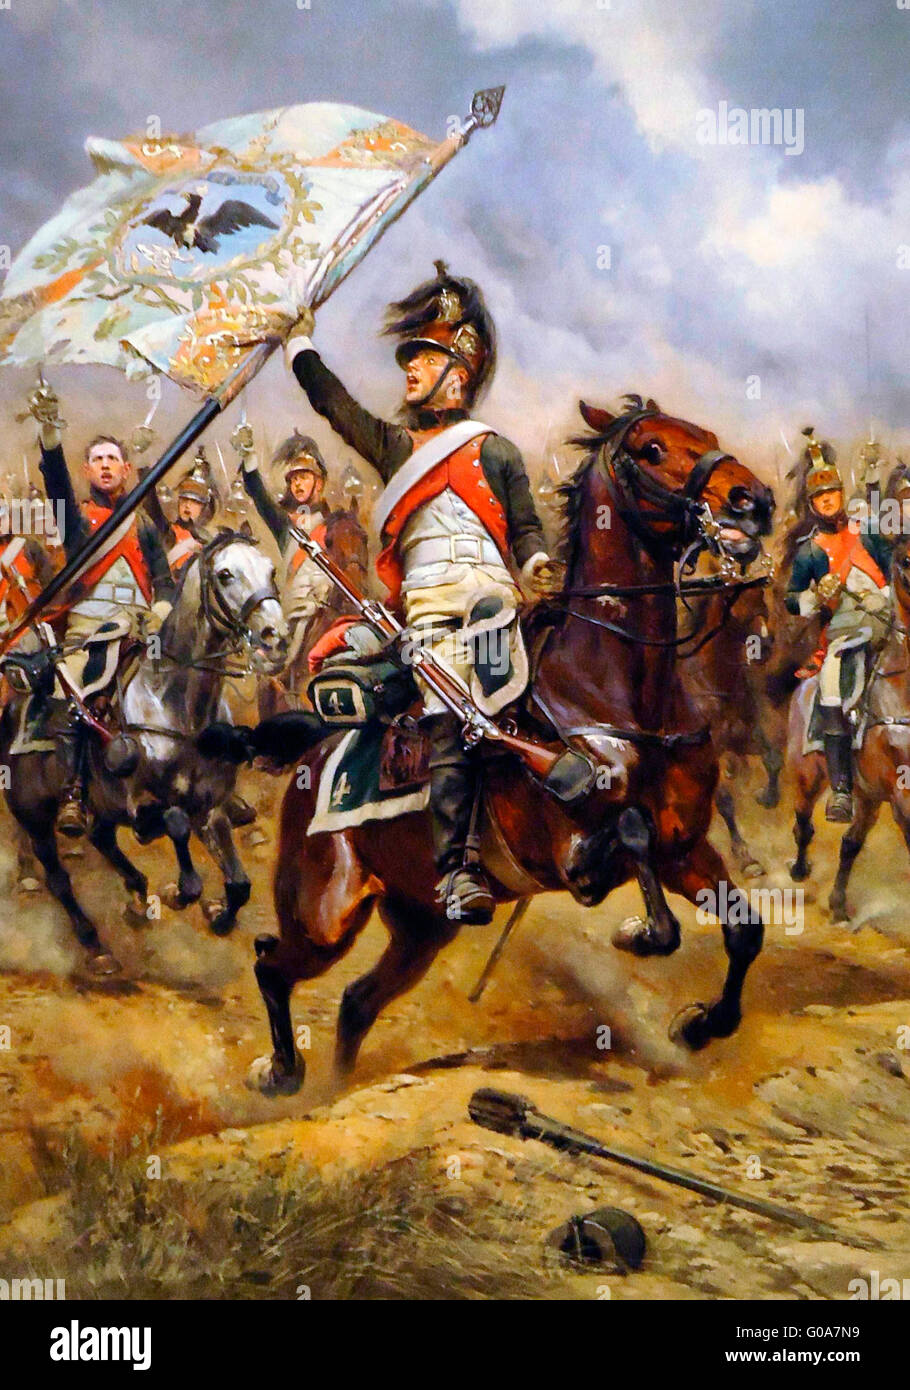 French dragoon with captured Prussian flag at the battle of Jena    'Le Trophee' by Edouard Detaille - Stock Image